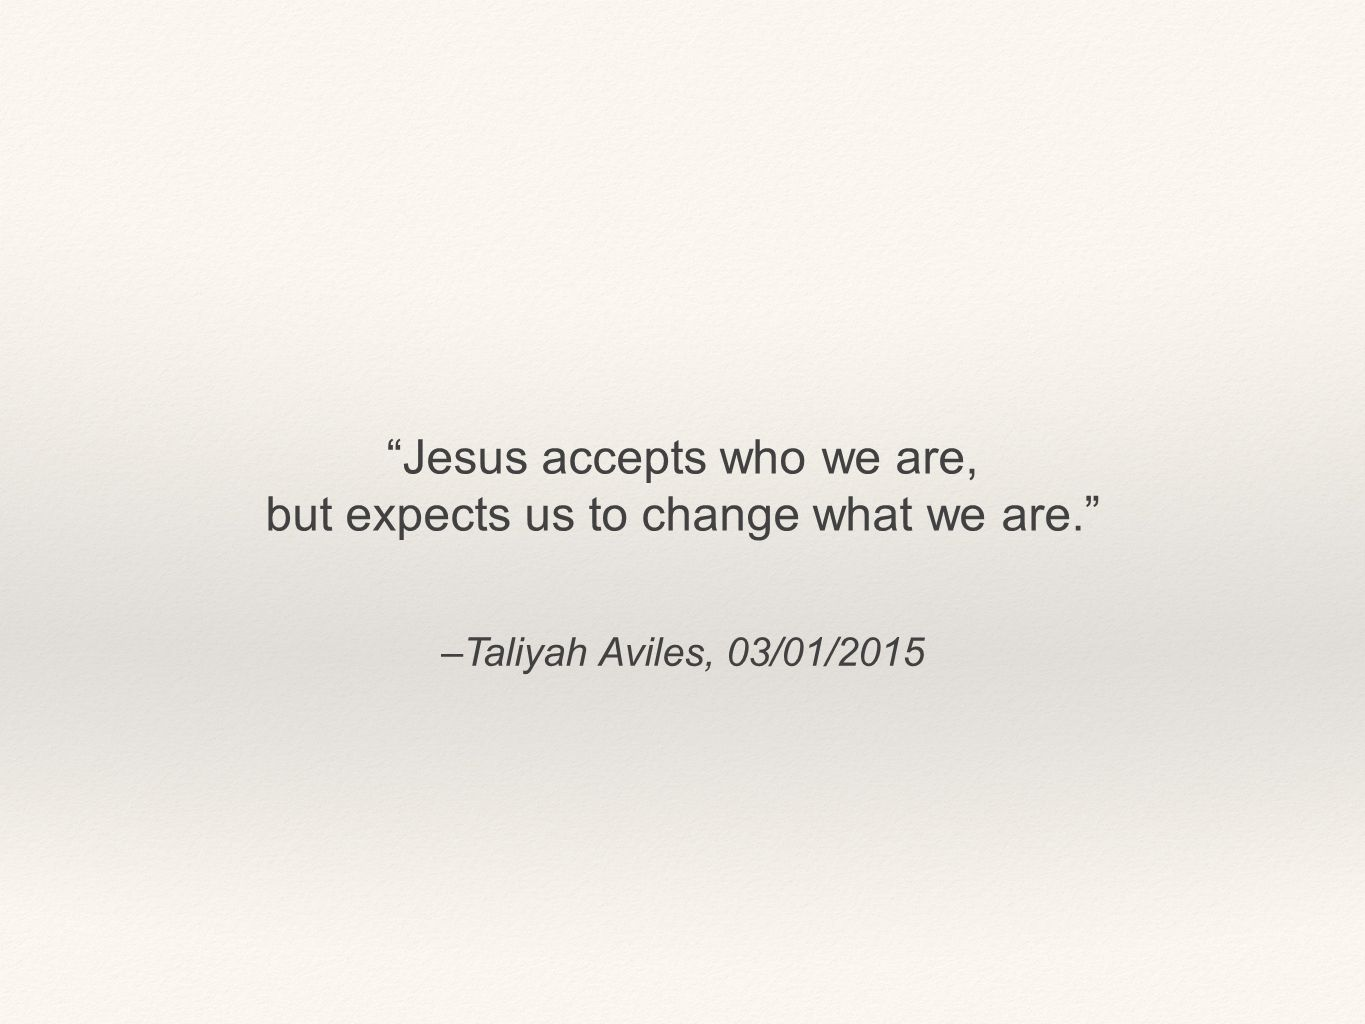 """–Taliyah Aviles, 03/01/2015 """"Jesus accepts who we are, but expects us to change what we are."""""""